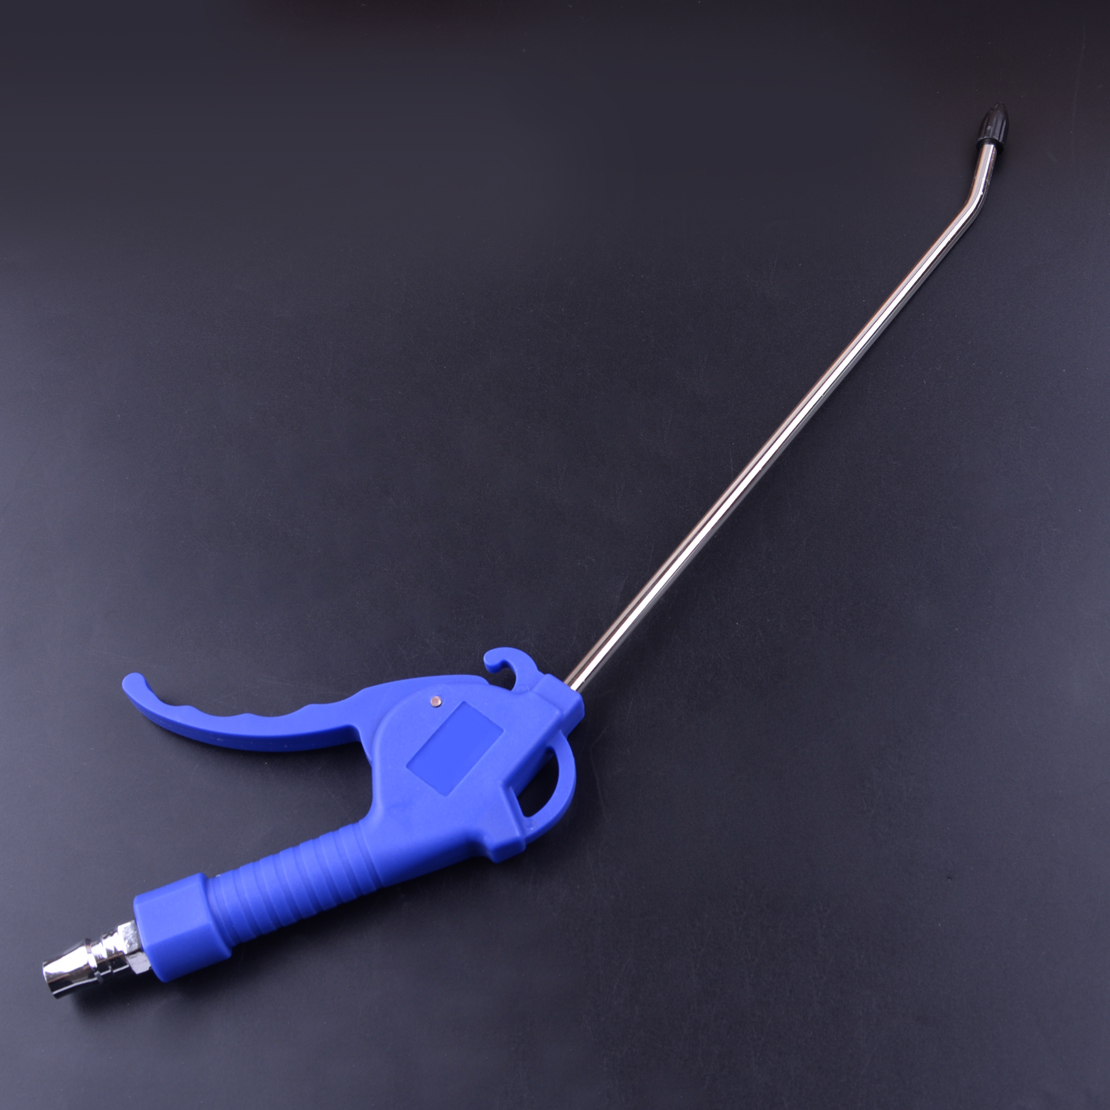 2 Mm Blue Handle Offset Tip Angle Nozzle Duster Cleaner Air Blow Pistol Grip Dust Blower Tool For Cleaning Machine Equipment